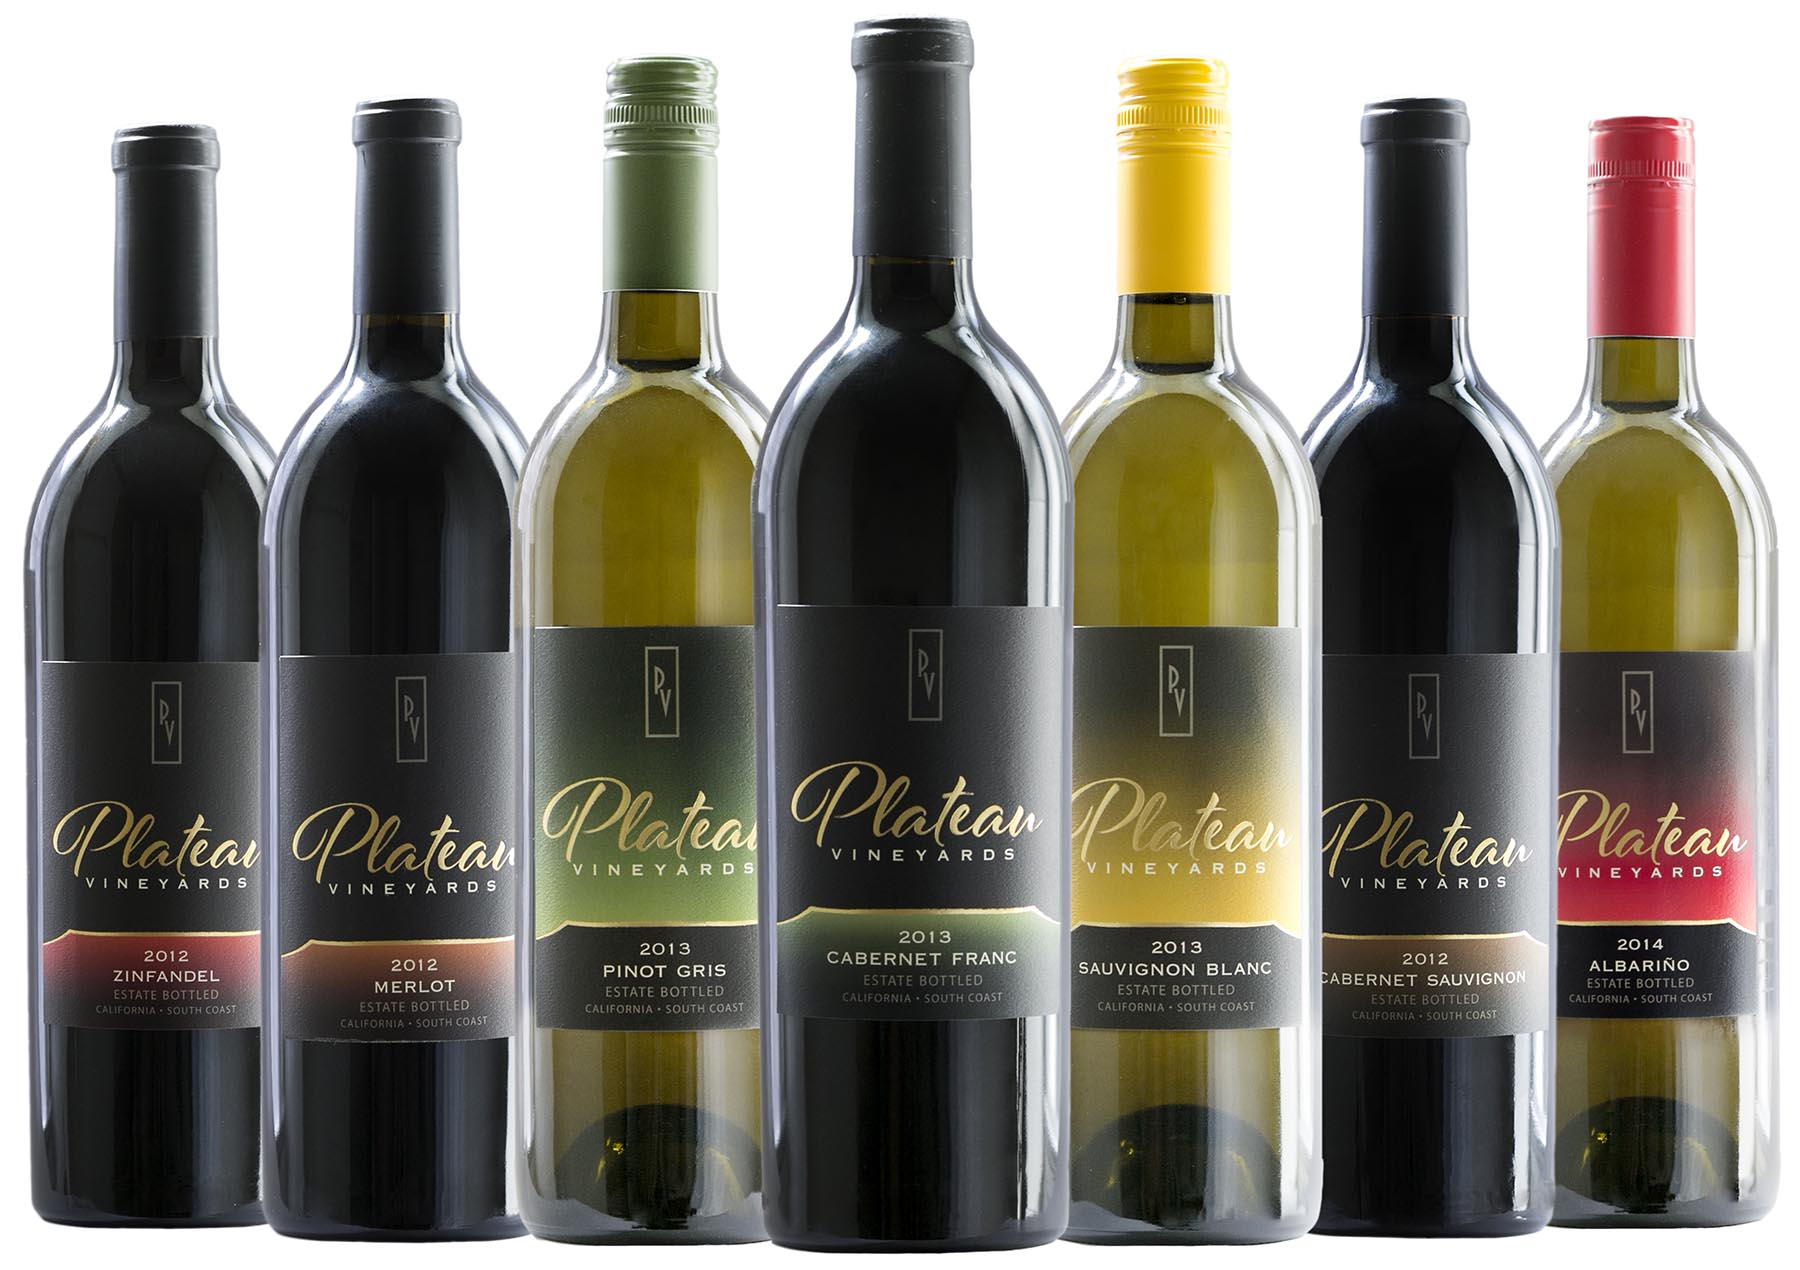 Plateau Vineyards wines